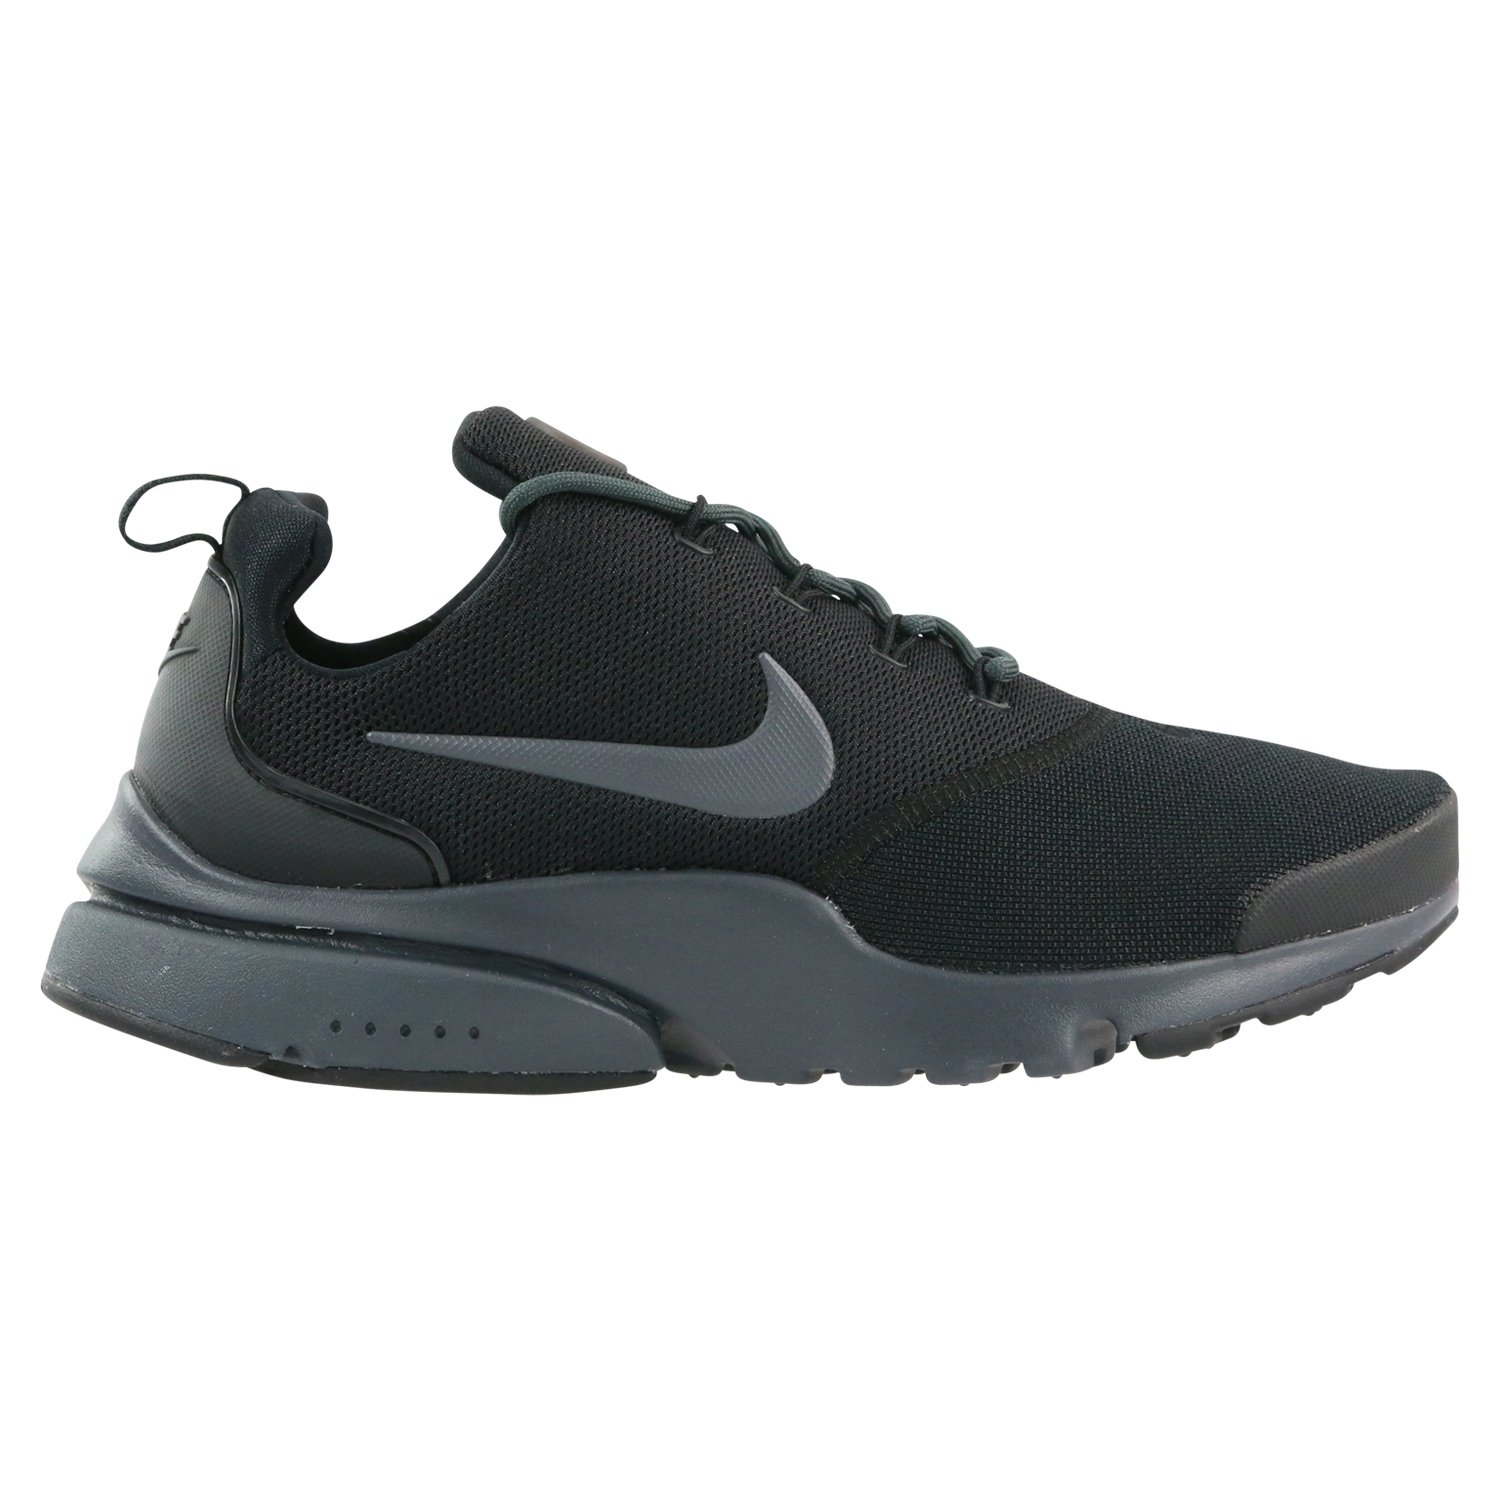 buy popular a8f70 17c52 Galleon - NIKE Presto Fly Mens Running Trainers 908019 Sneakers Shoes (UK 7  US 8 EU 41, Black Anthracite 008)